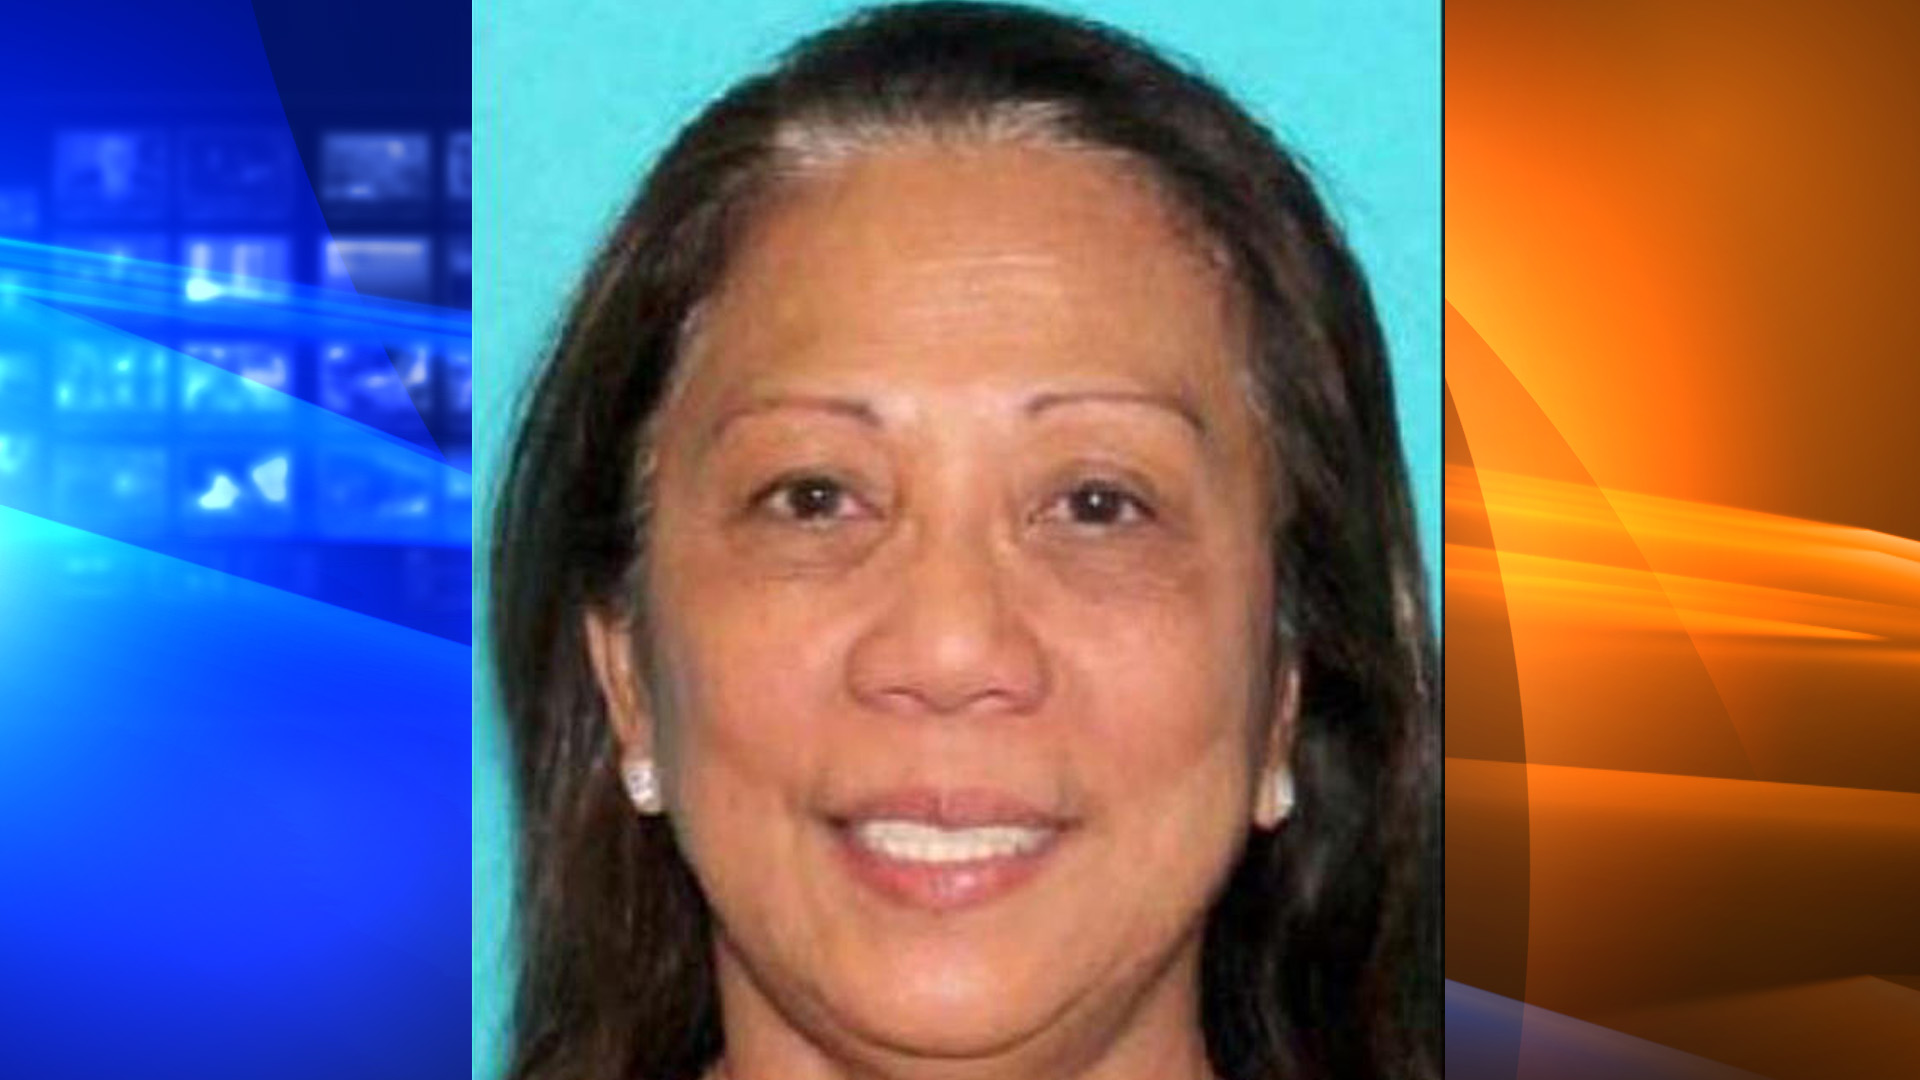 Marilou Danley is shown in a photo released by the Las Vegas Metropolitan Police Department.